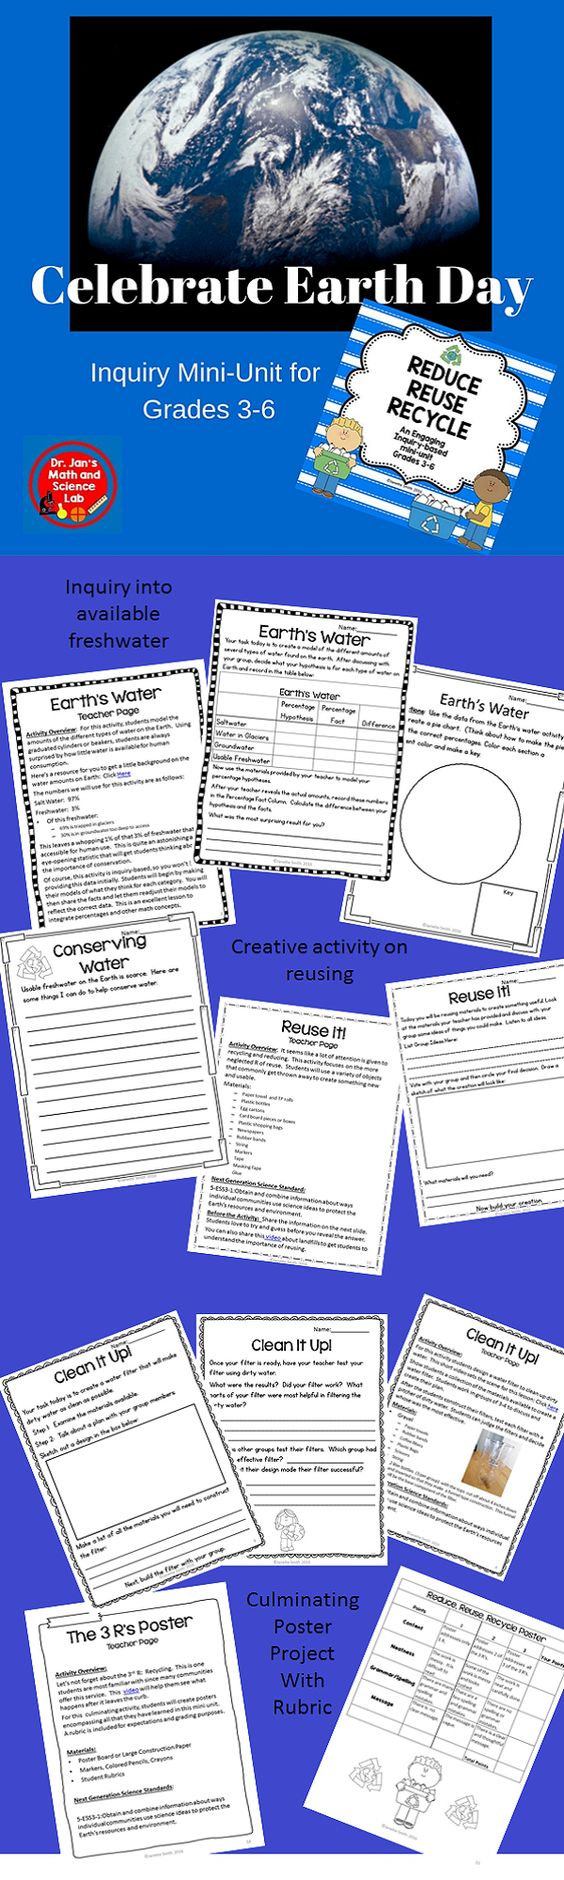 Reduce reuse recycle activities - Celebrate Earth Day With These Ngss Aligned Activities Students Will Gain A Clear Understanding Of